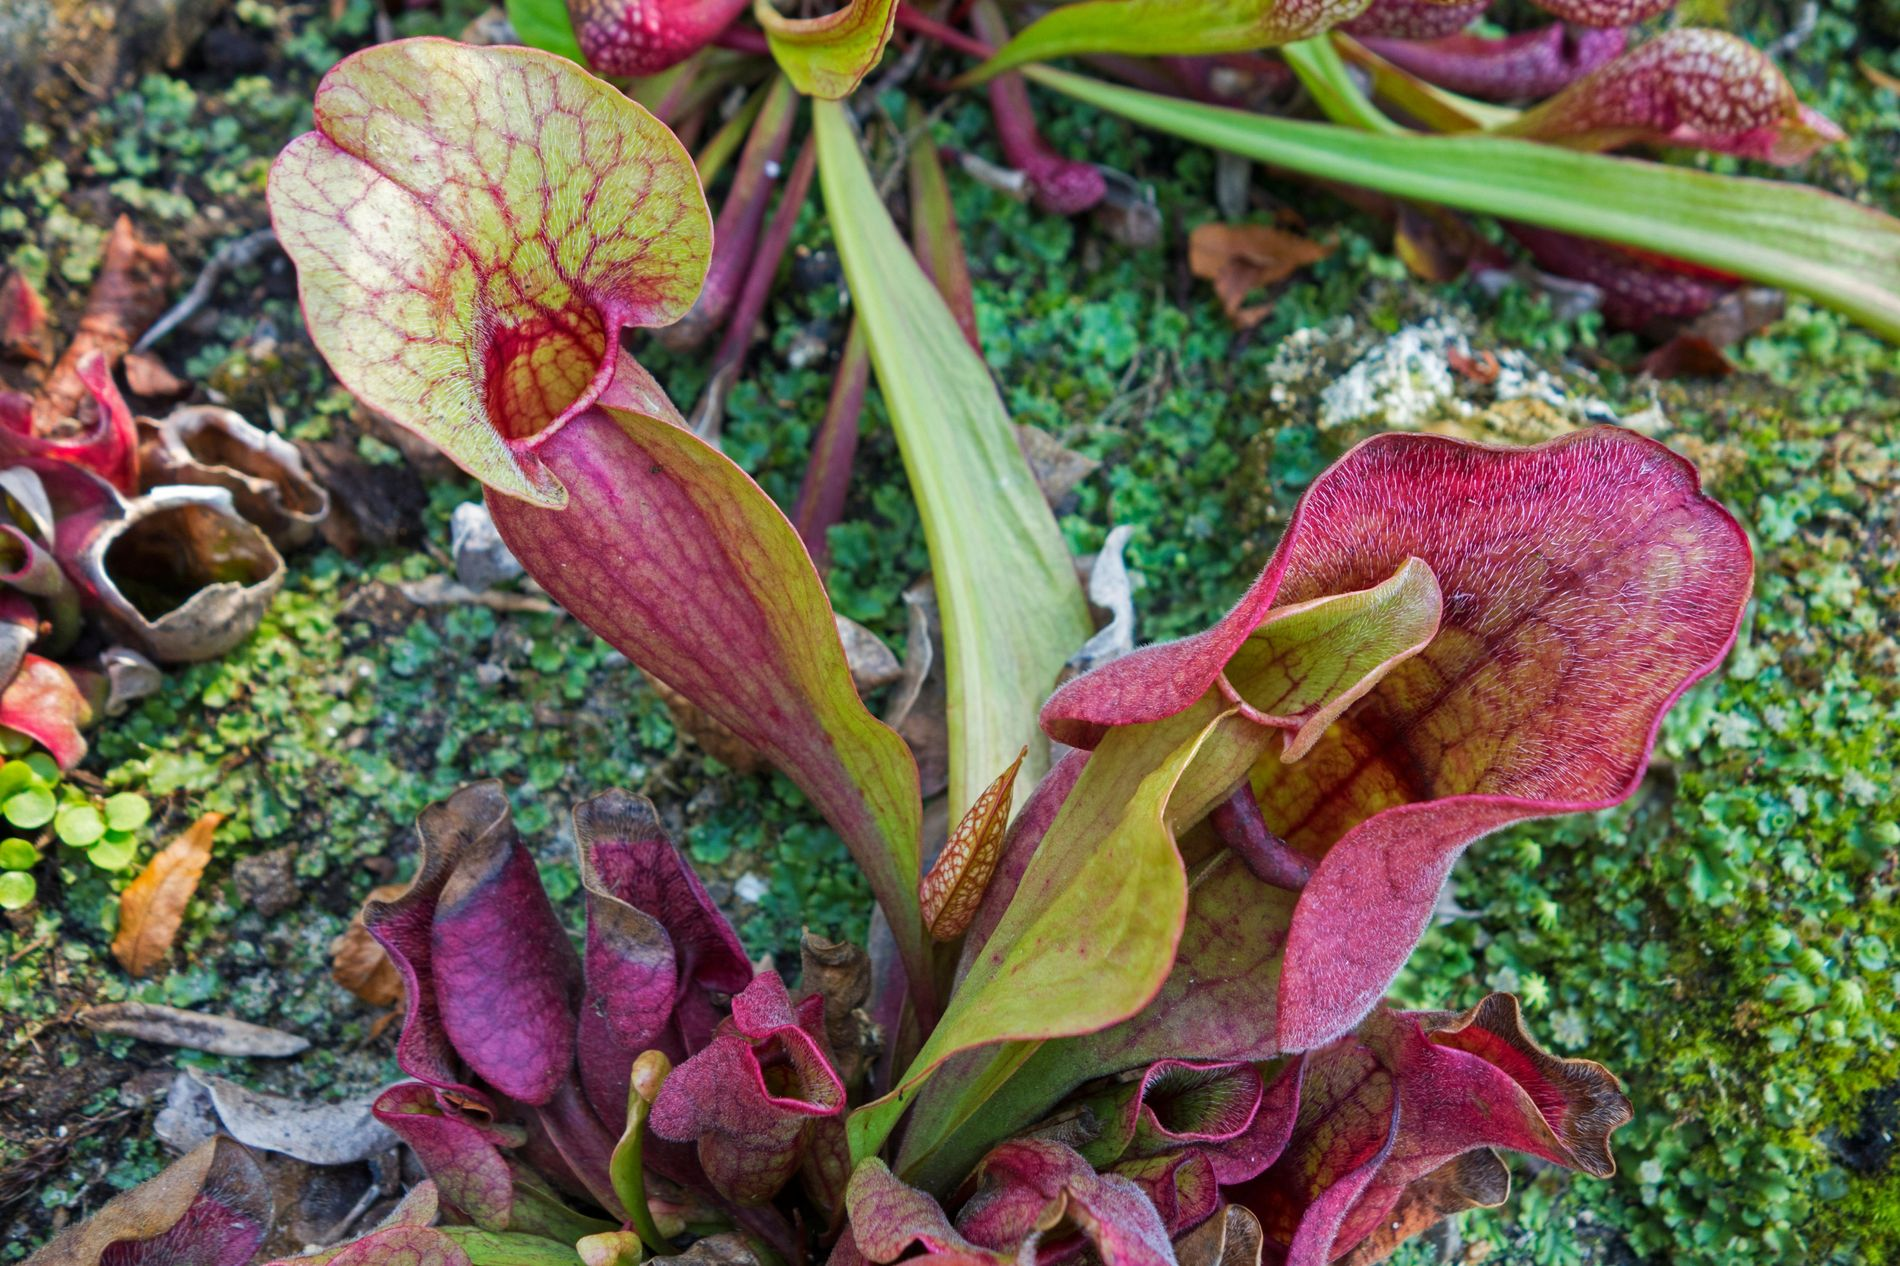 The northern pitcher plant (Sarracenia purpurea) has a taste for salamanders.